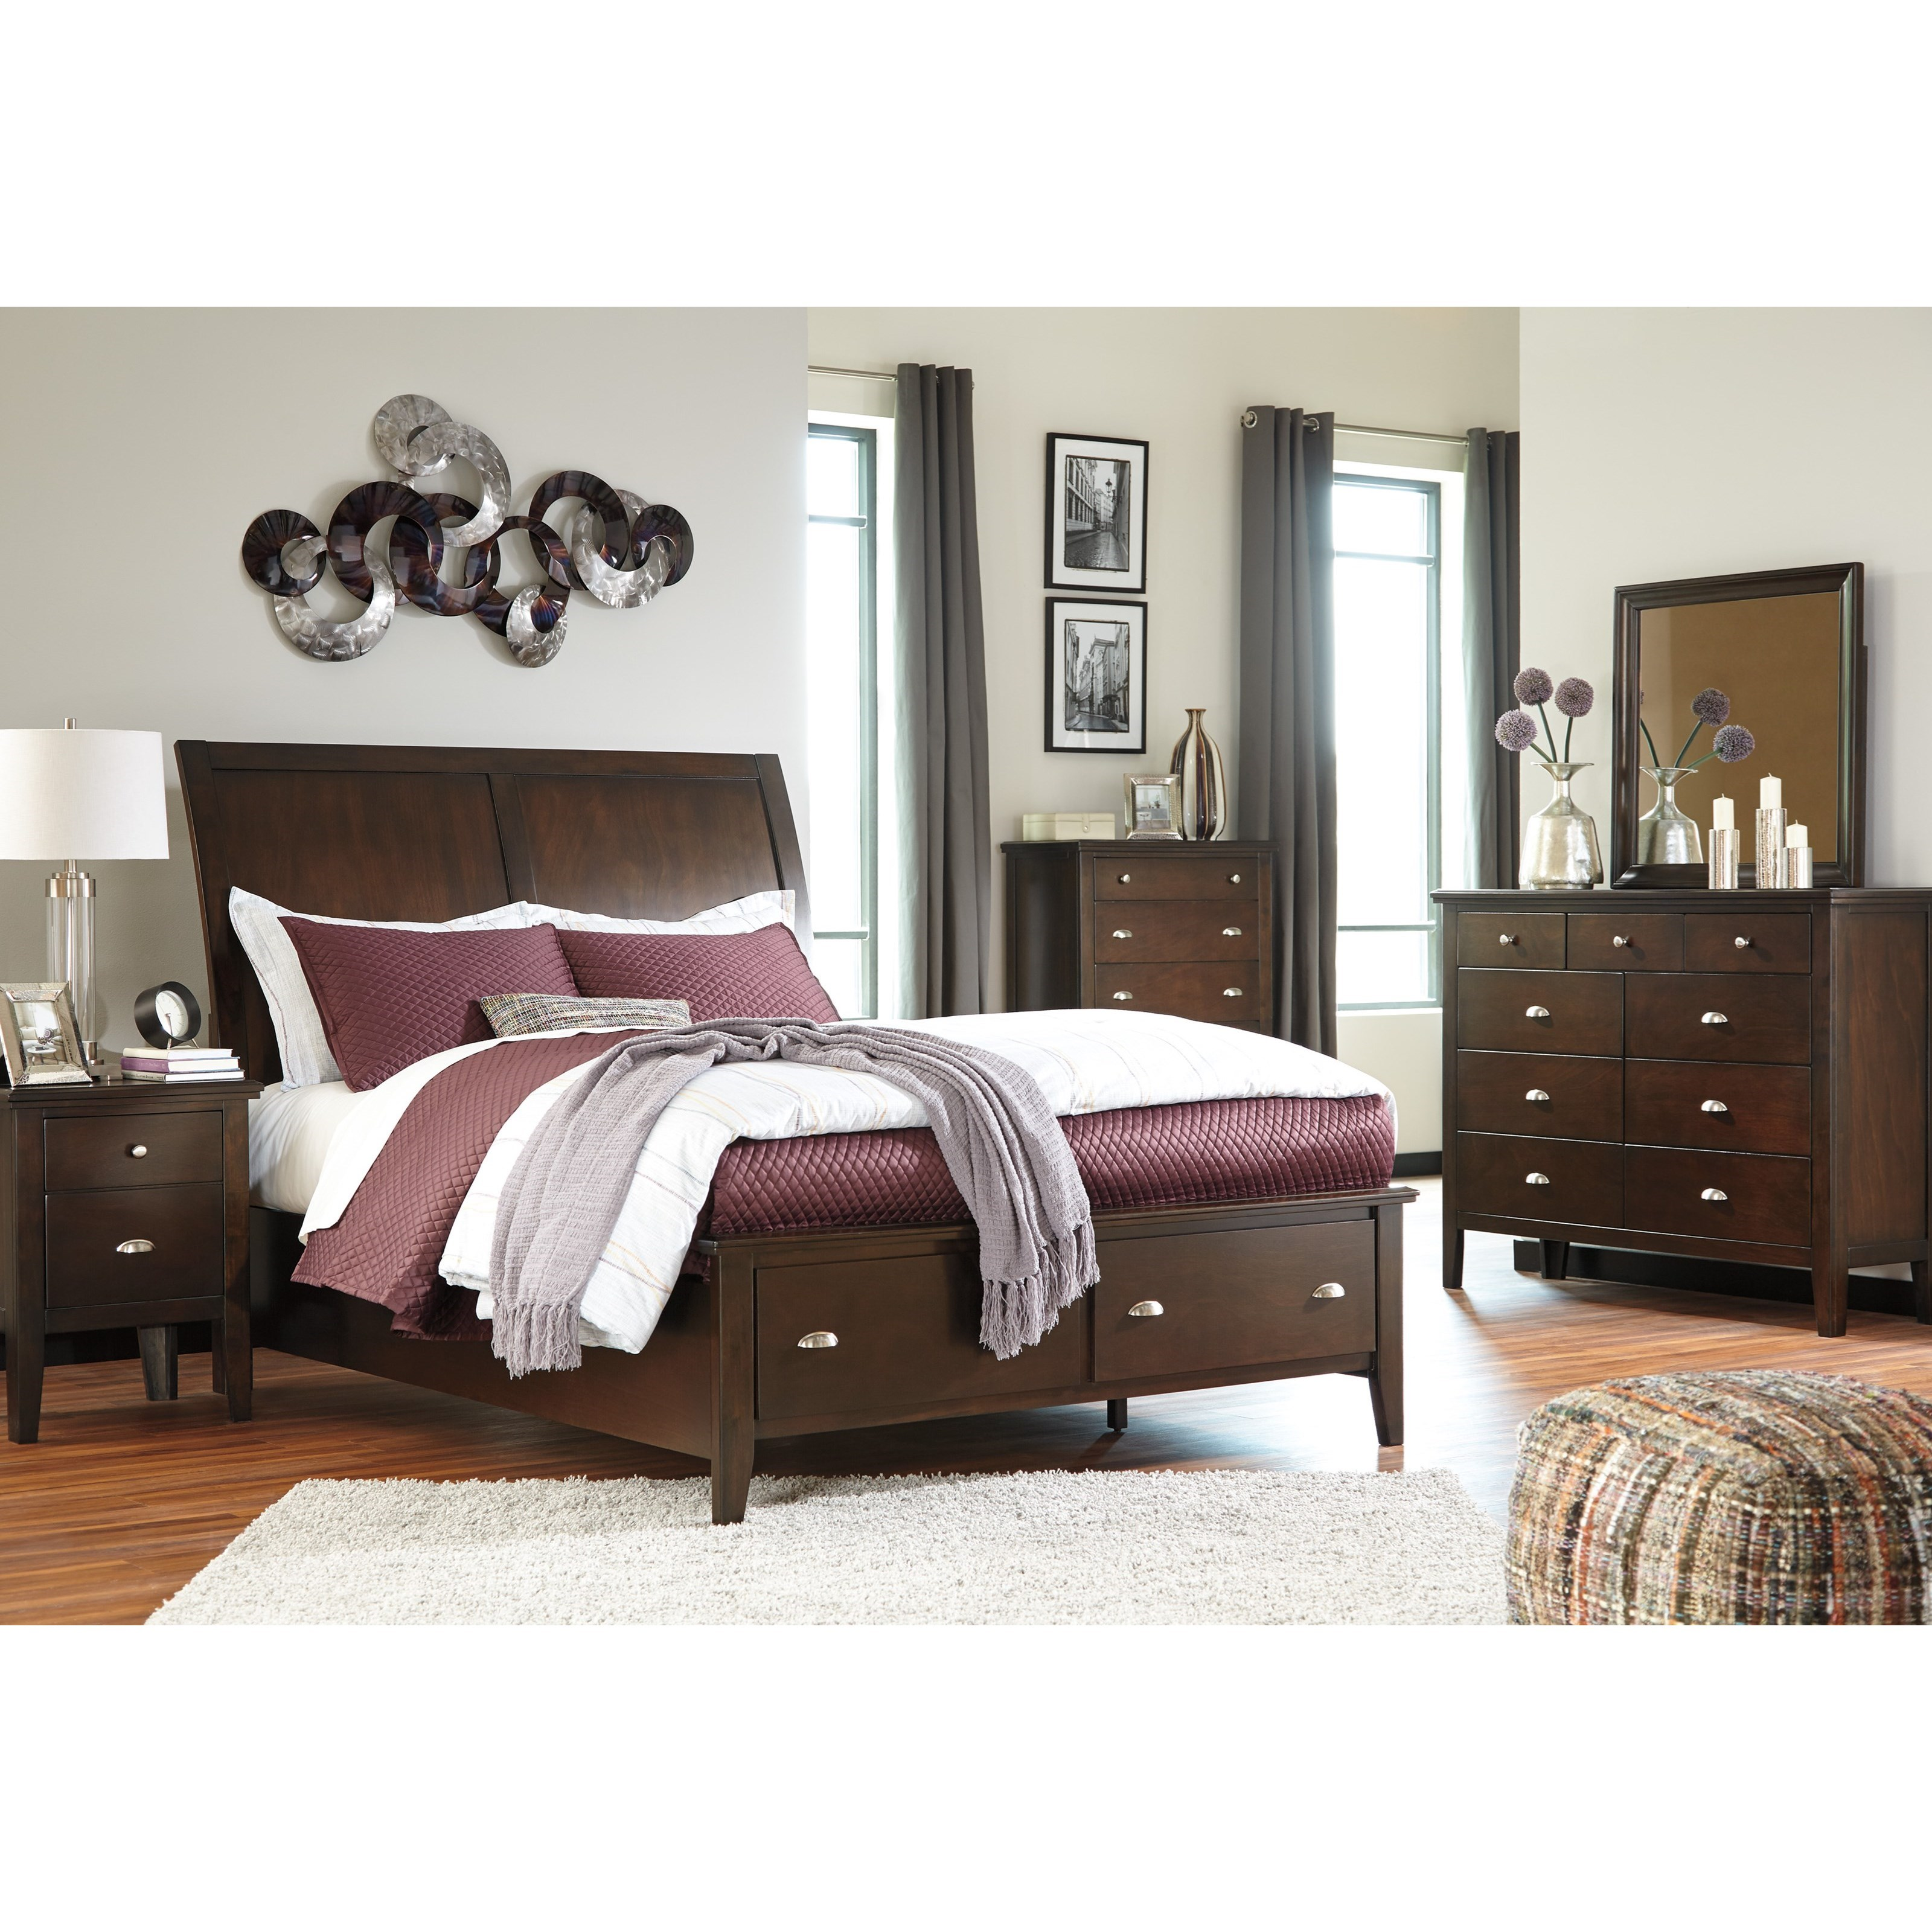 Ashley signature design evanburg king bedroom group dunk for Bedroom furniture groups